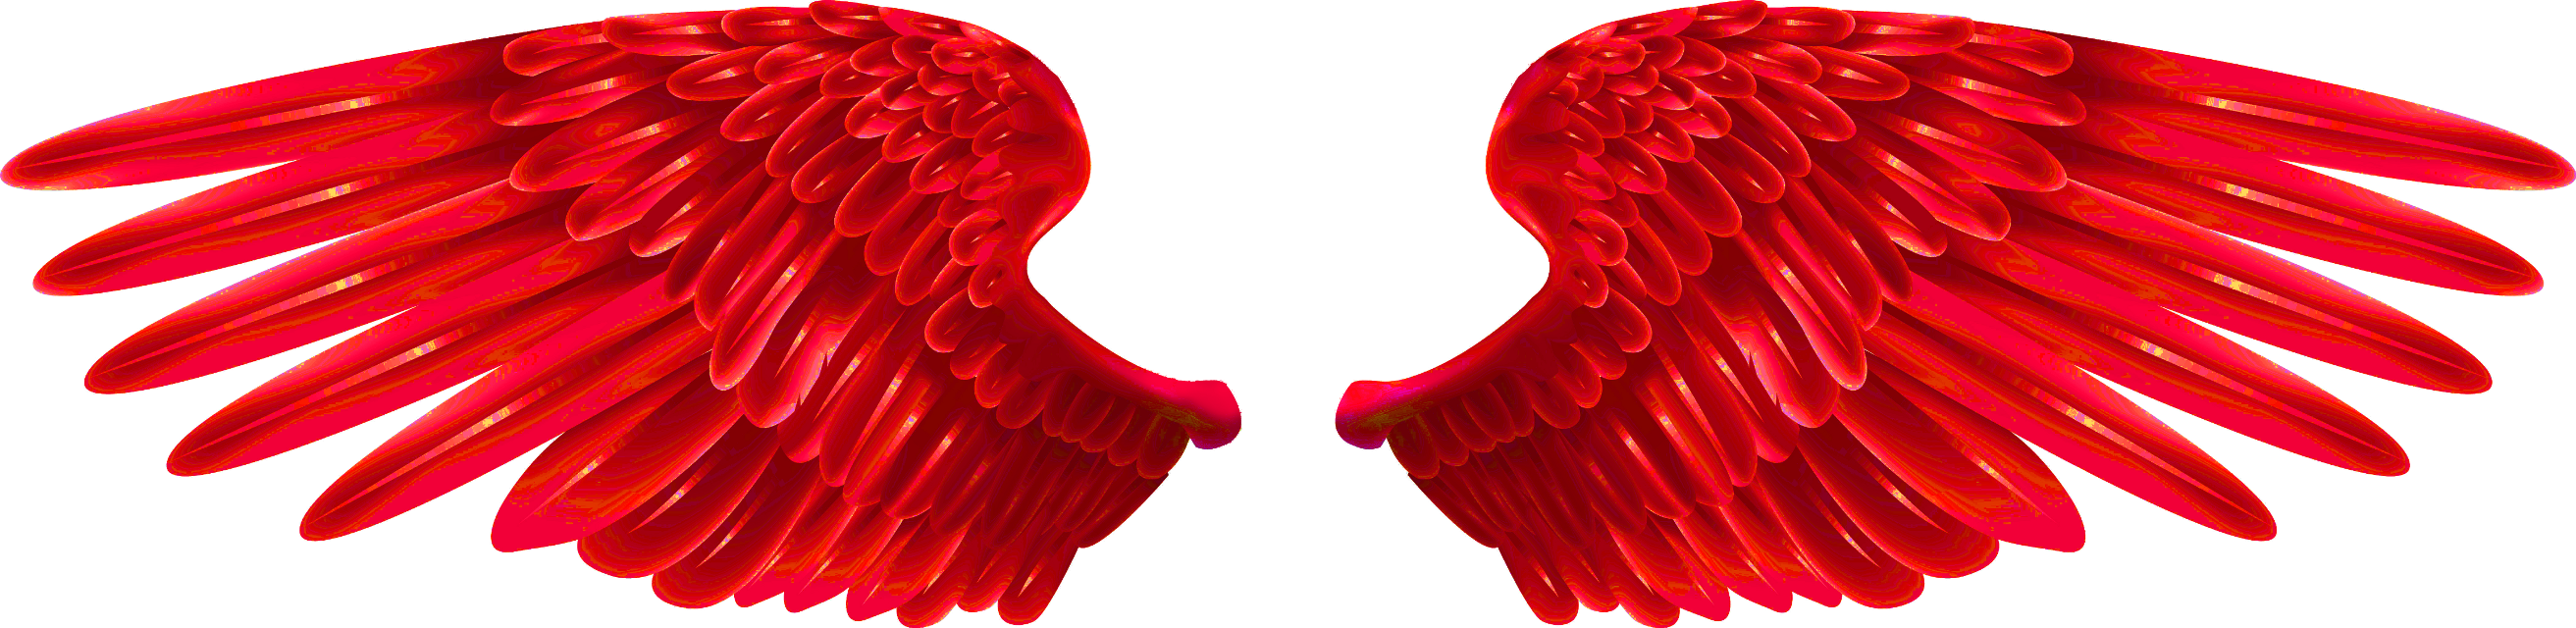 #Red #furby #wing #goth #gothic #dreamcore #wedcore #cyberpunk #cybercore #cyber #draincore #soft #weirdcore #nostalgiacore #ilminal #y2k #grunge #aesthetic #nostalgia #overlay #png #dark #drainer #edit #web #freetoedit